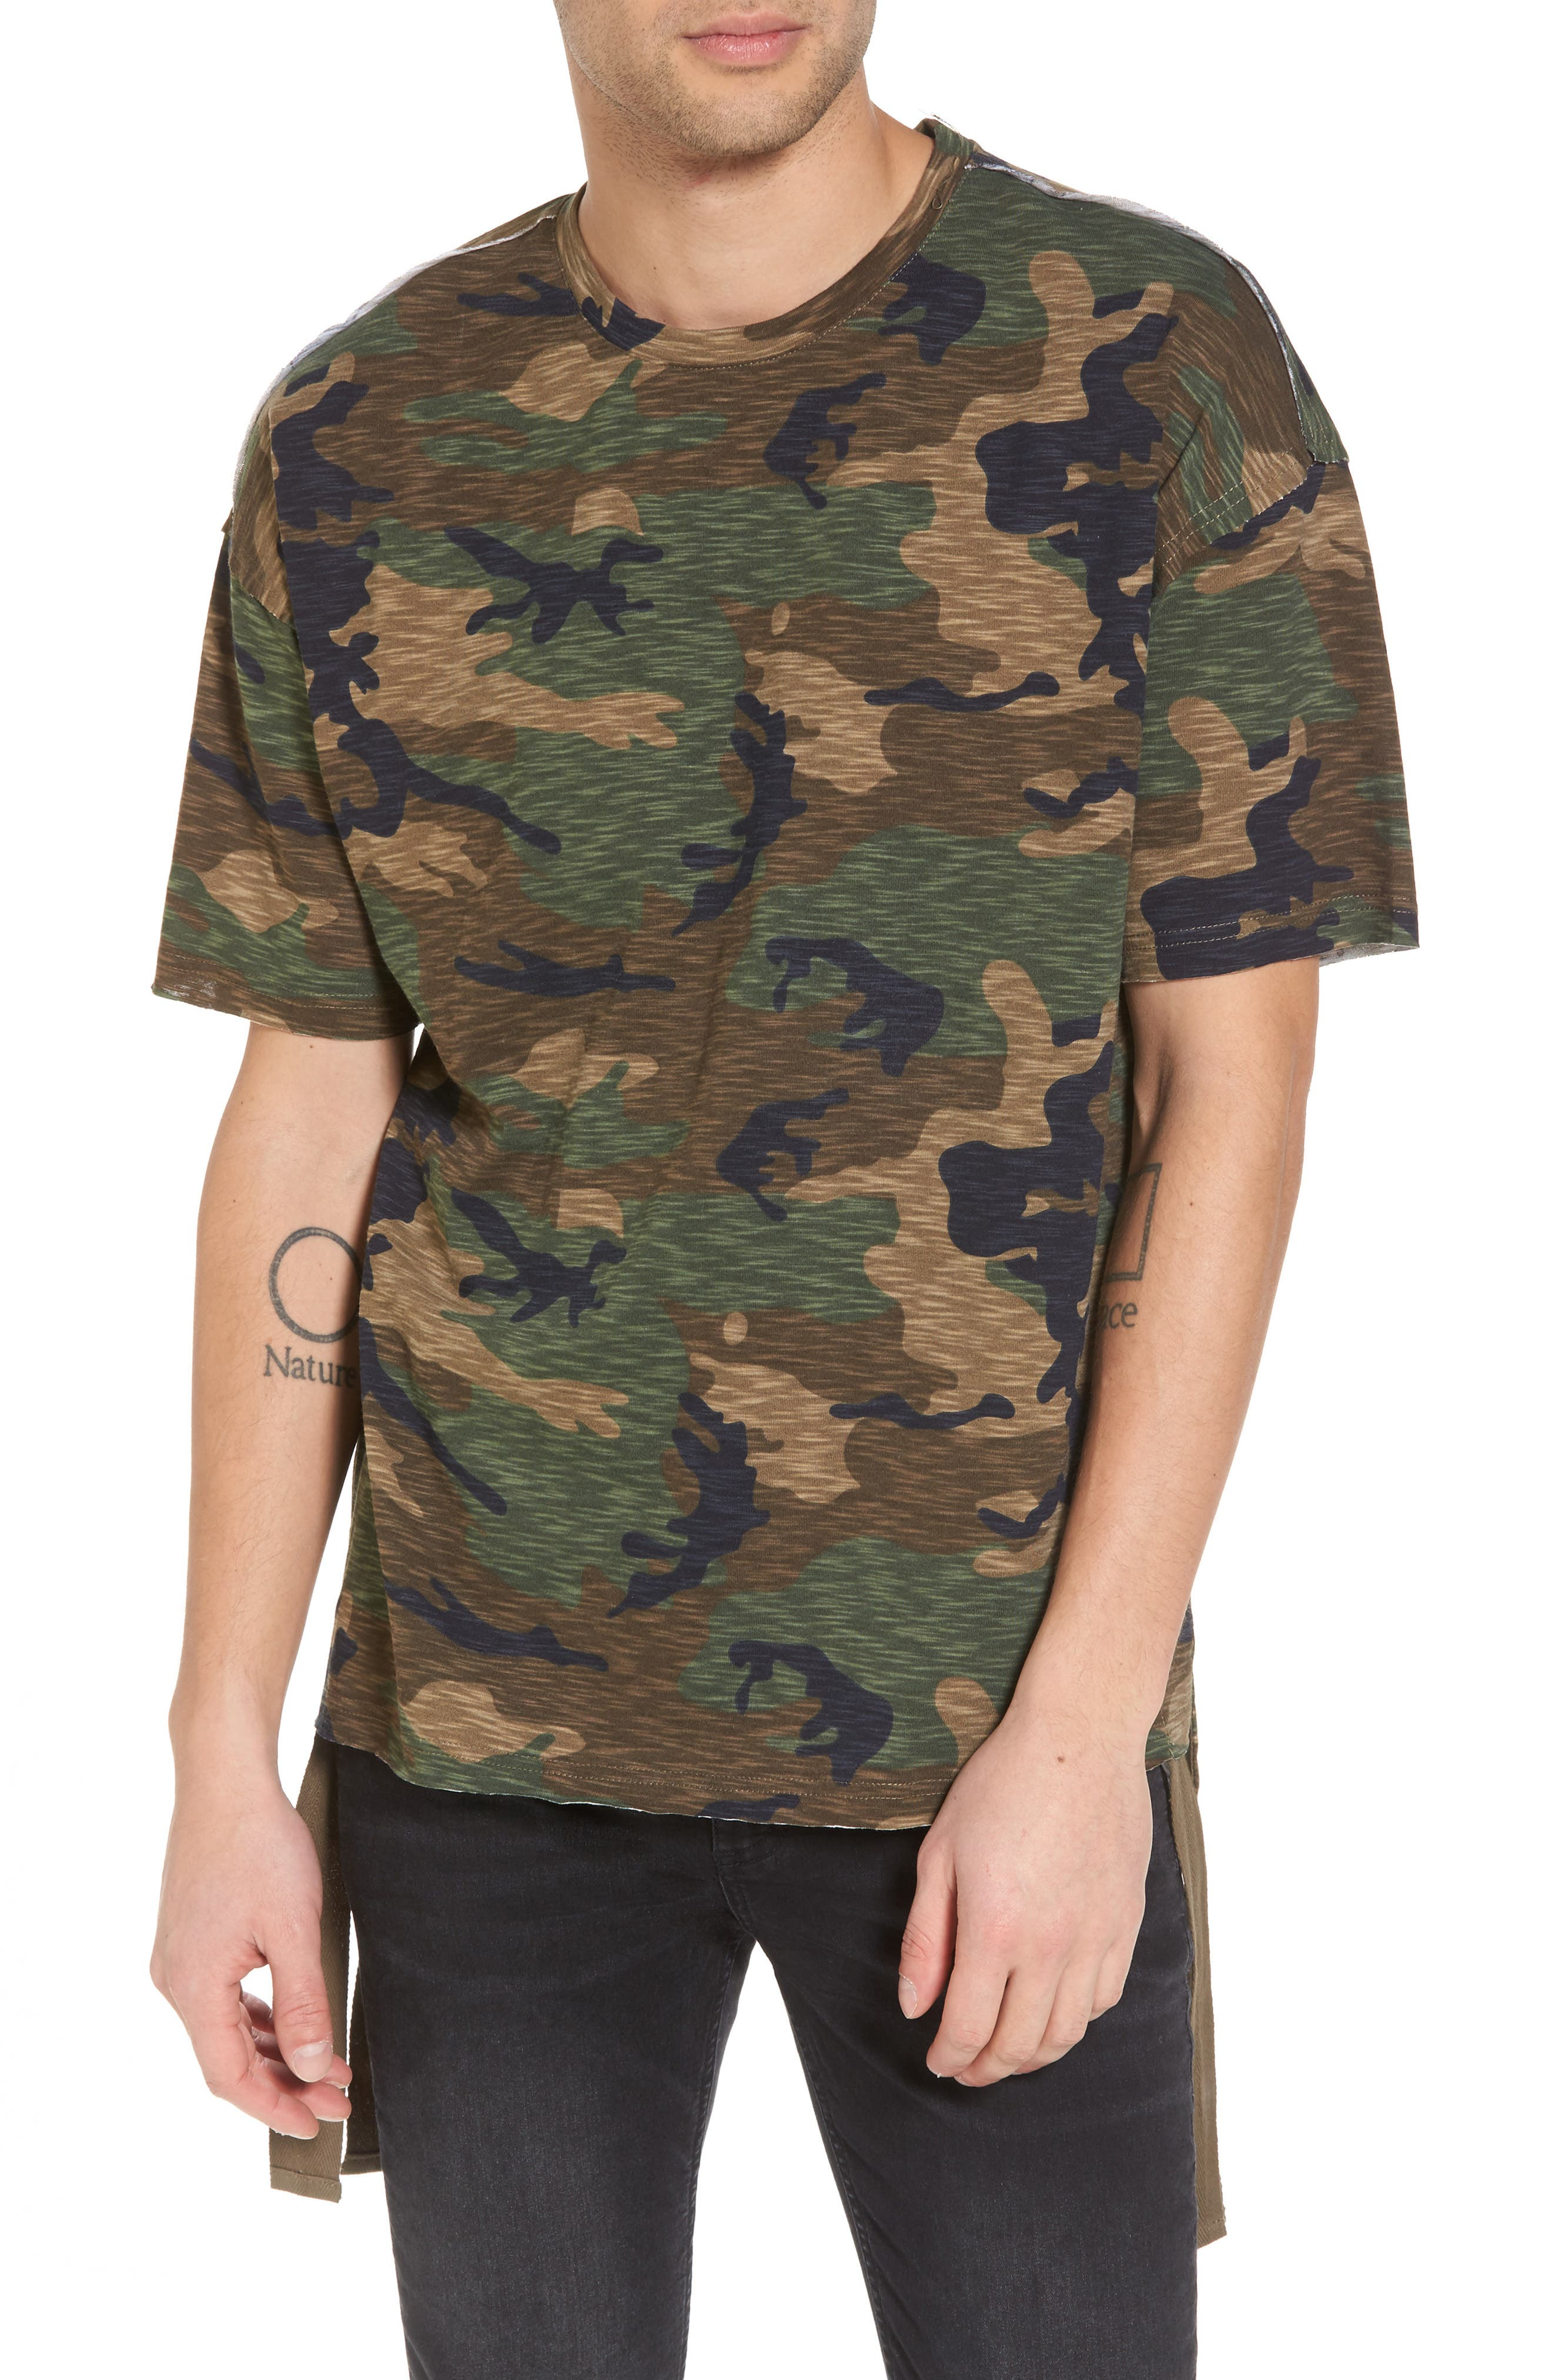 The Rail Camo Strapped T-Shirt